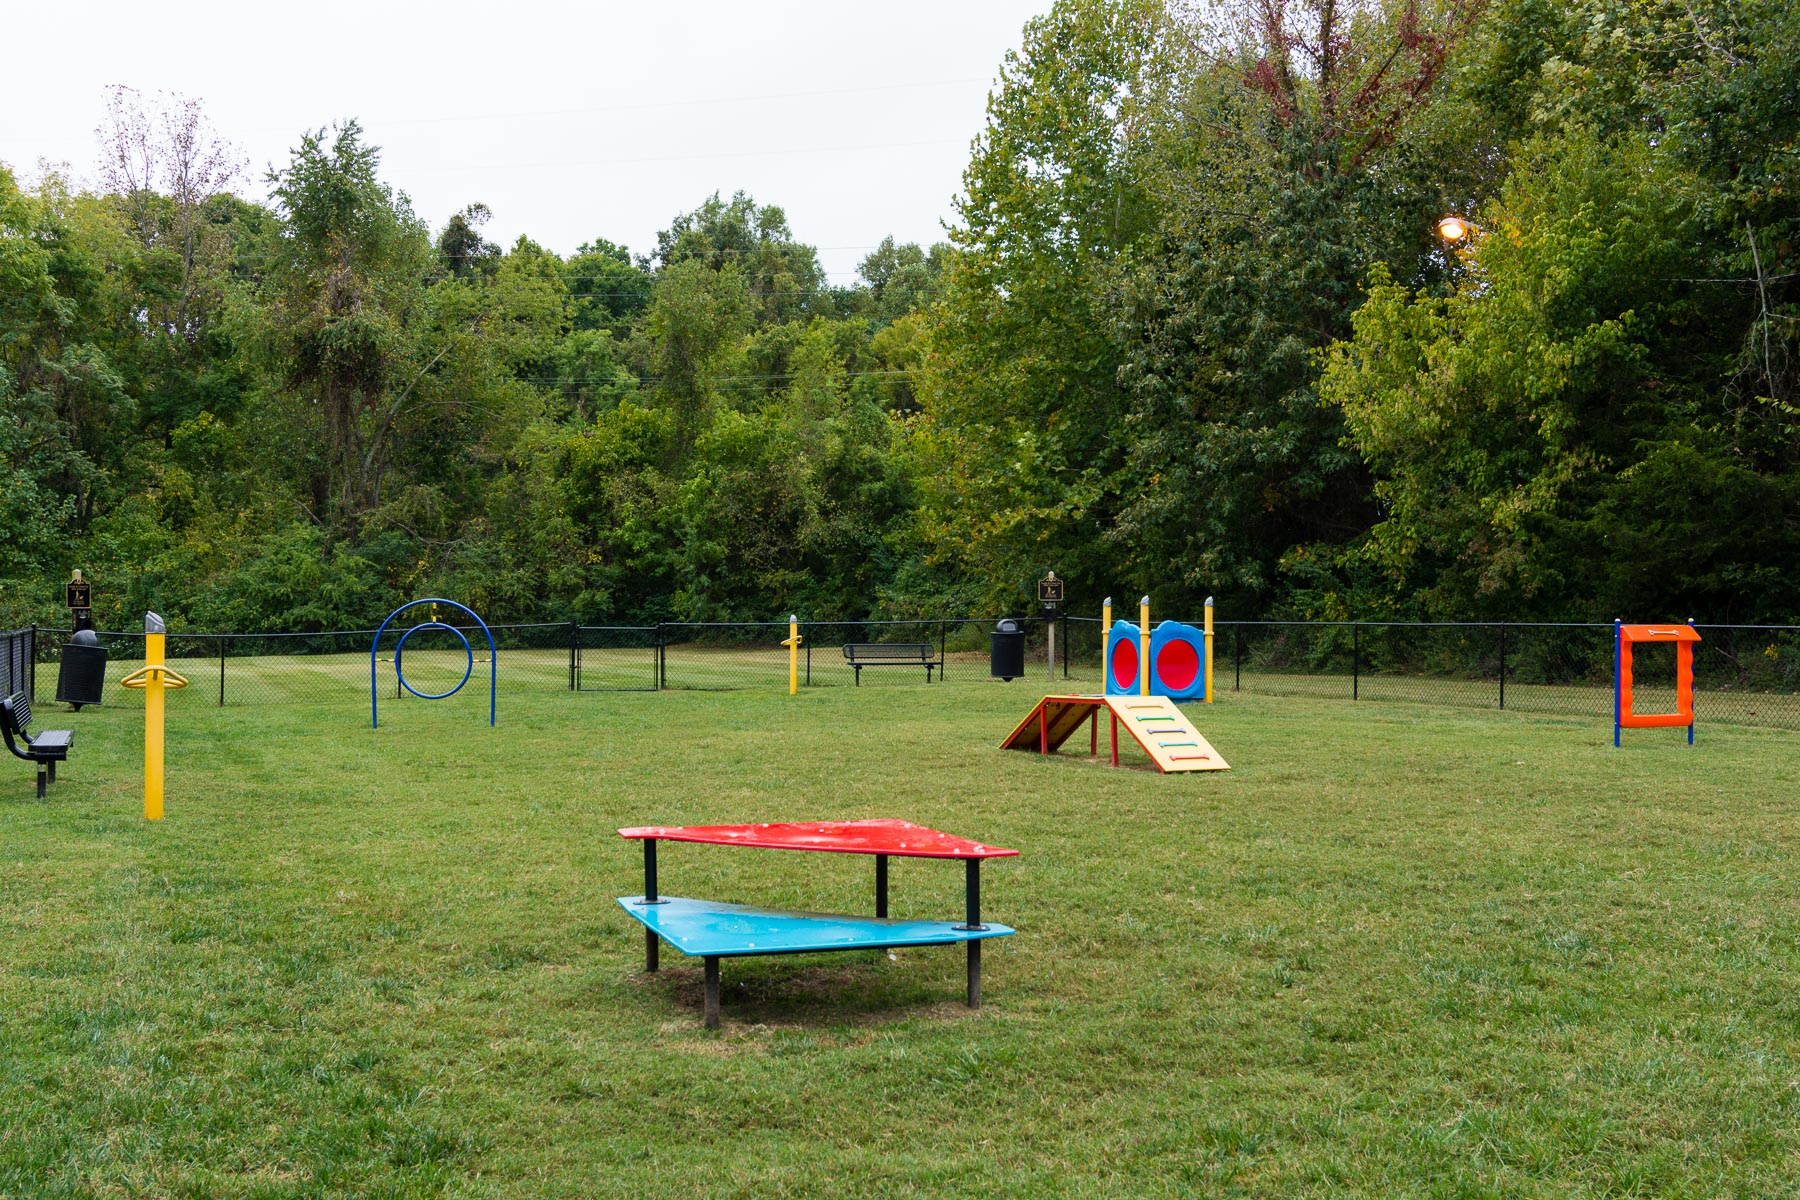 Nashboro Village | Apartments for Rent in Nashville, TN | Dog Park